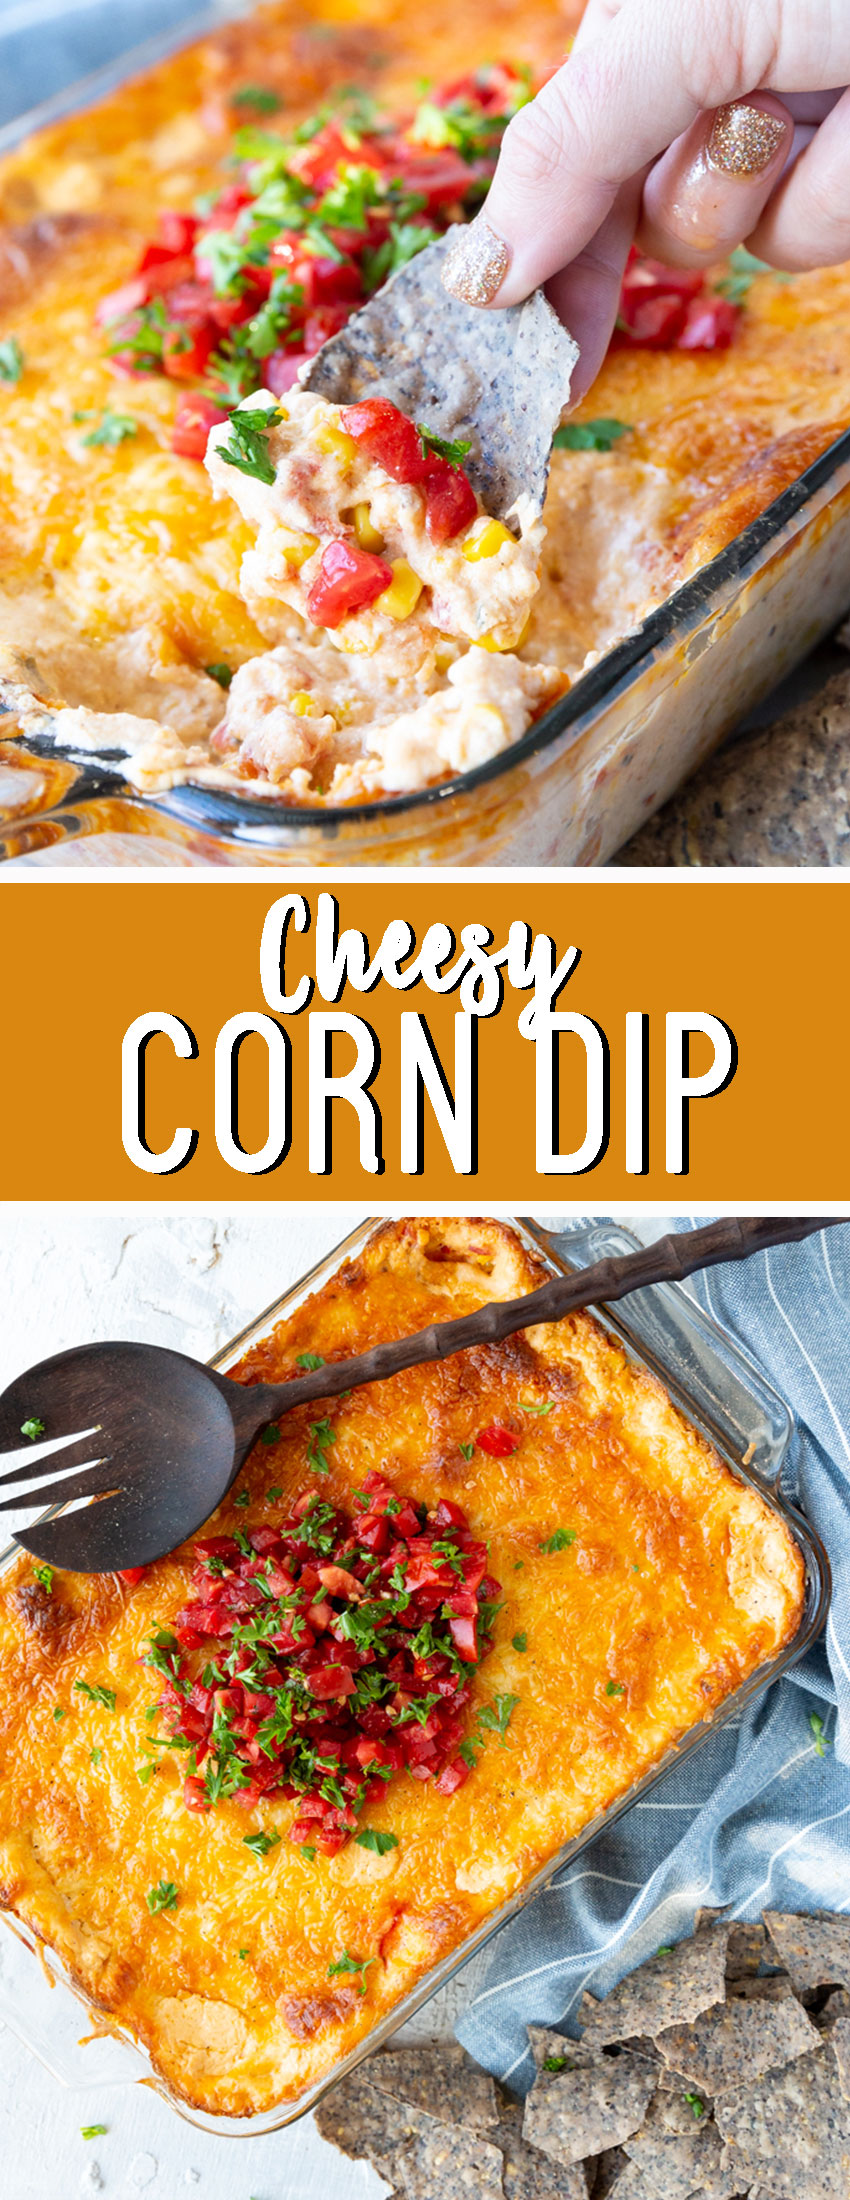 Cheesy corn dip: creamy, cheesy, and delicious with sweet corn, and topped with fresh tomatoes. This is such a good appetizer.